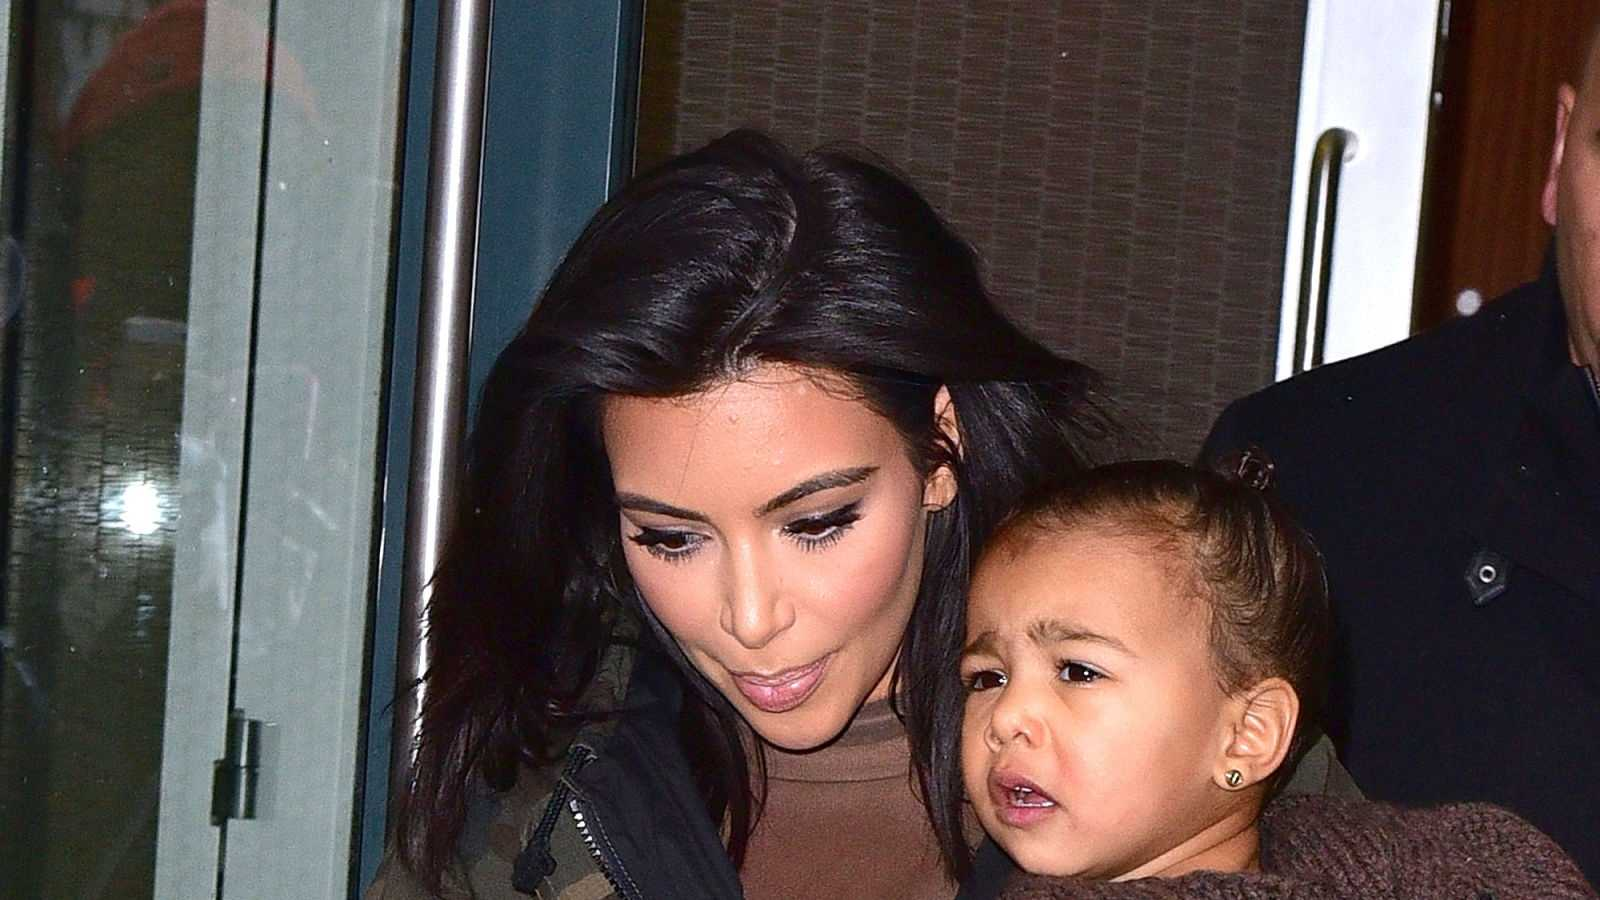 Times North West Could Not Even Kim Kardashian and North West in Manhattan on Feb. 12, 2015, in New York City.